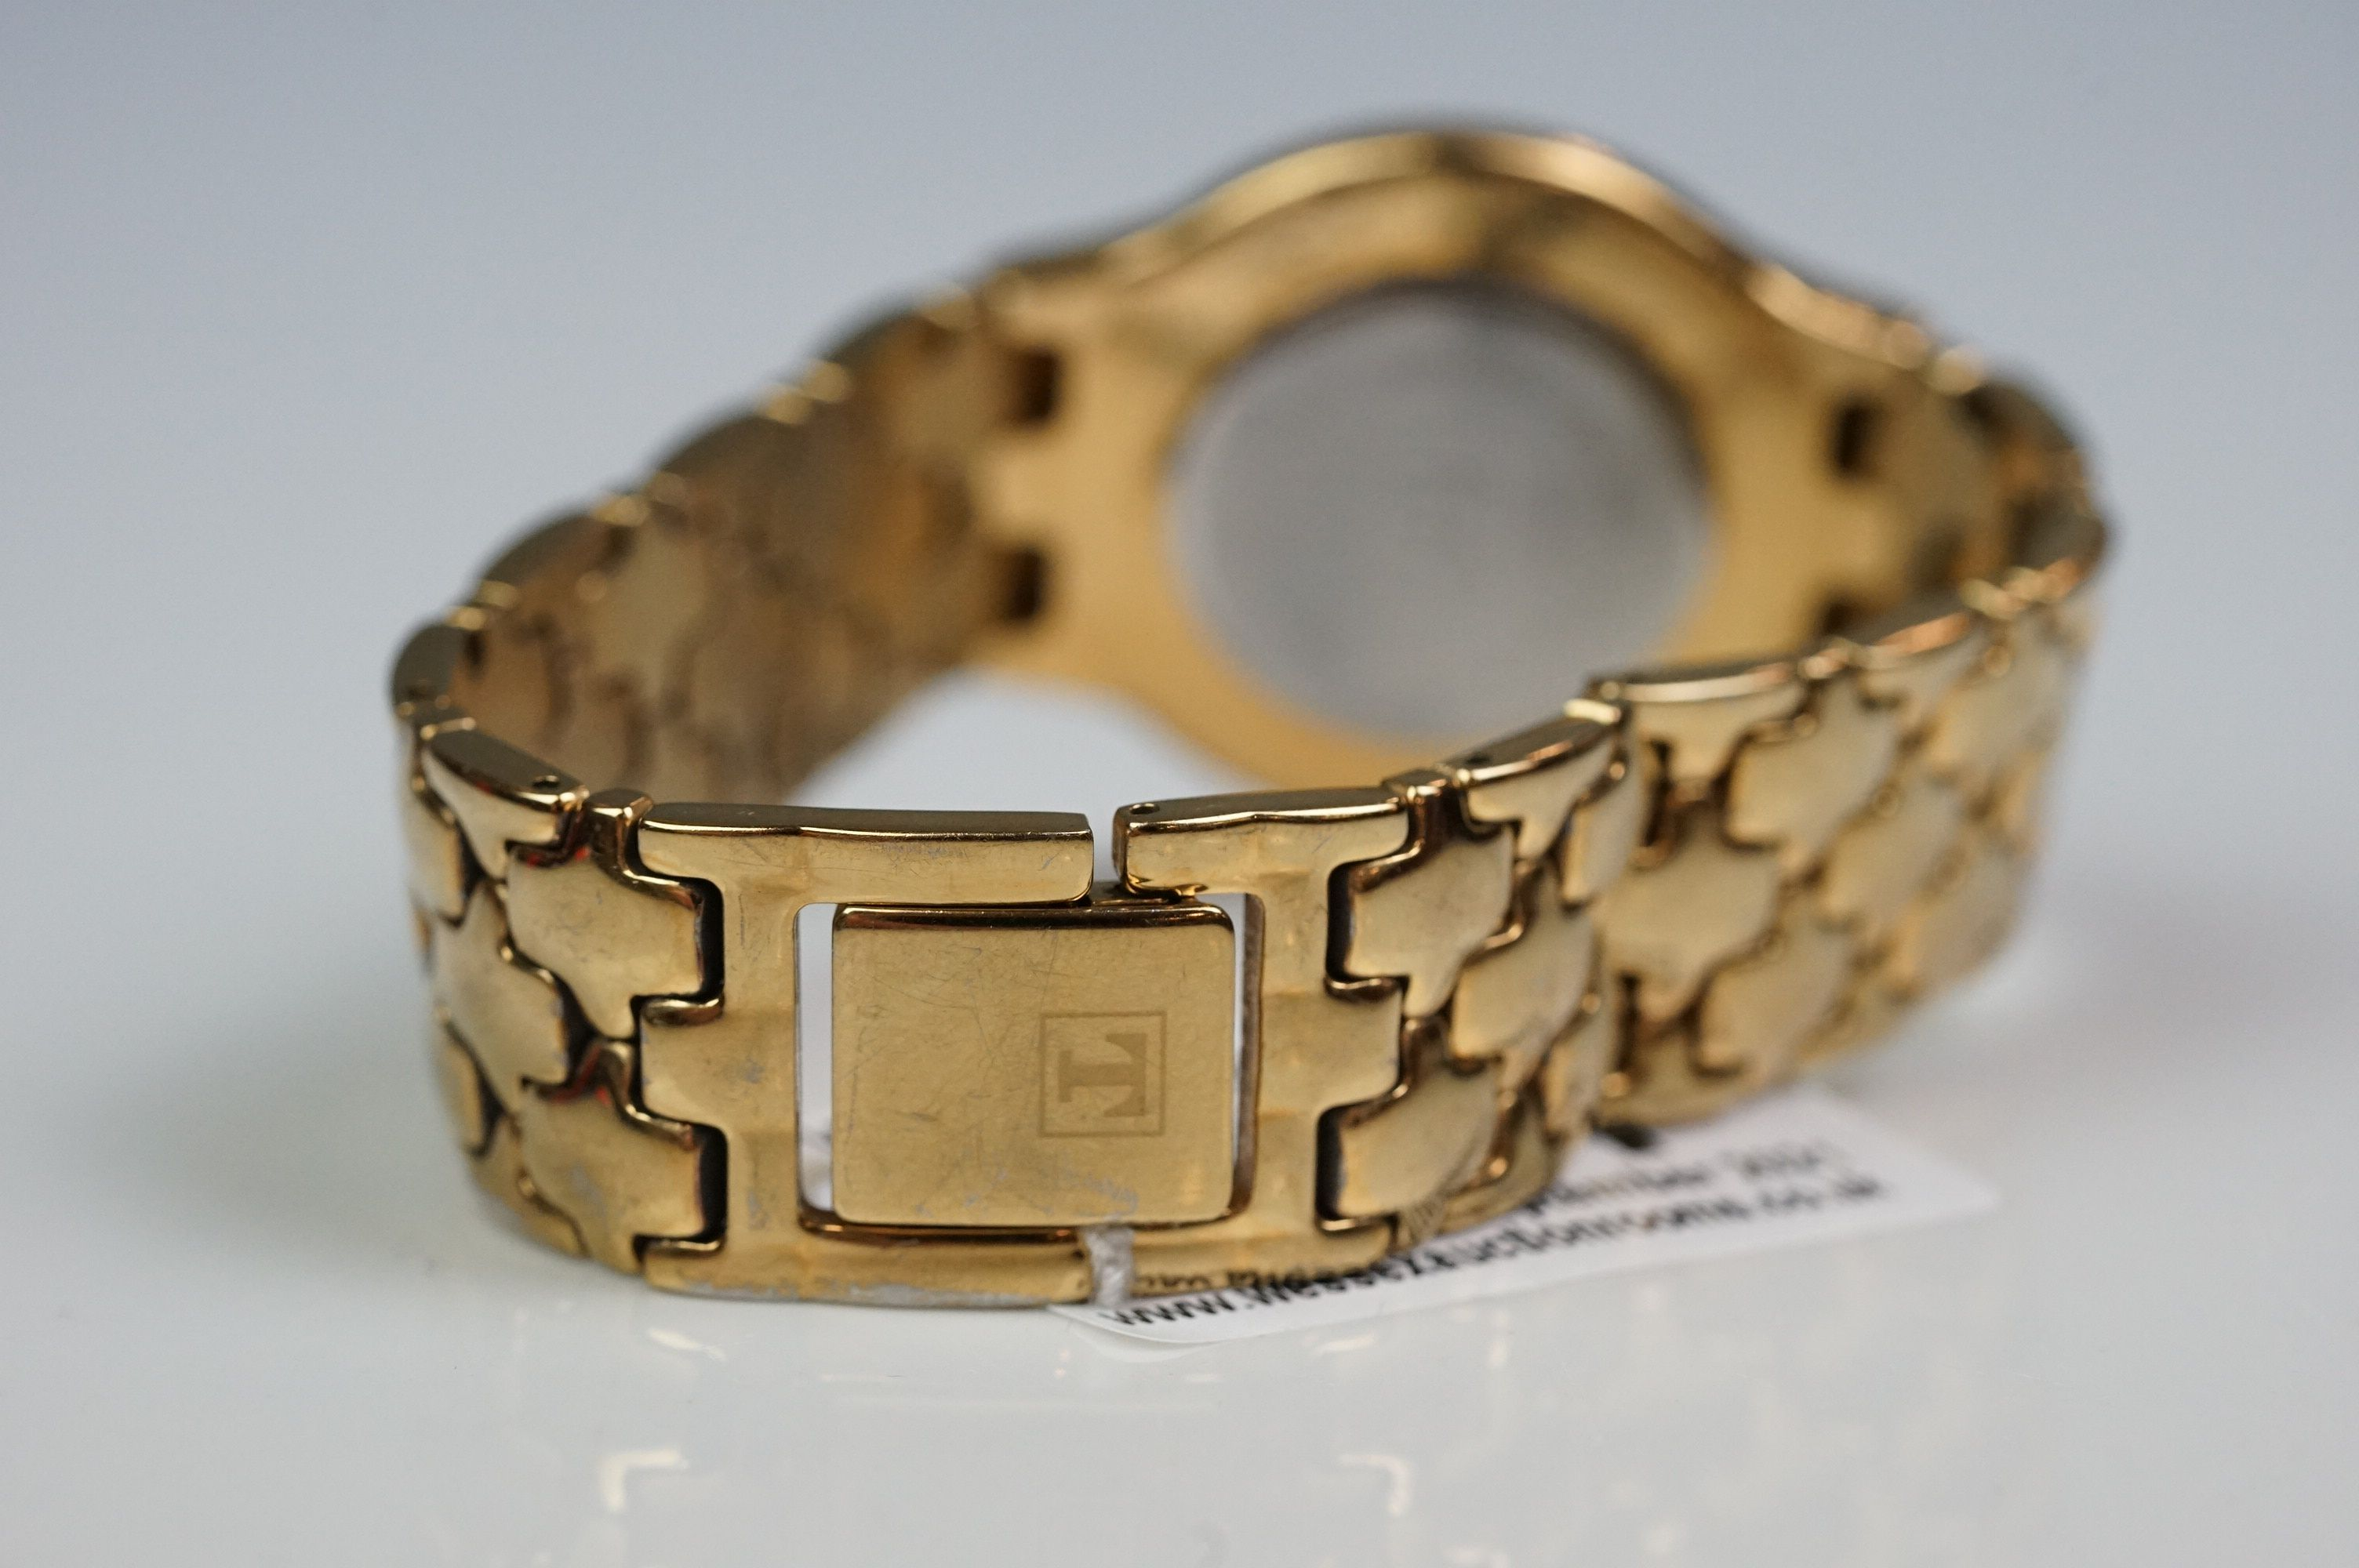 Tissot K250 gold plated dress watch - Image 10 of 10